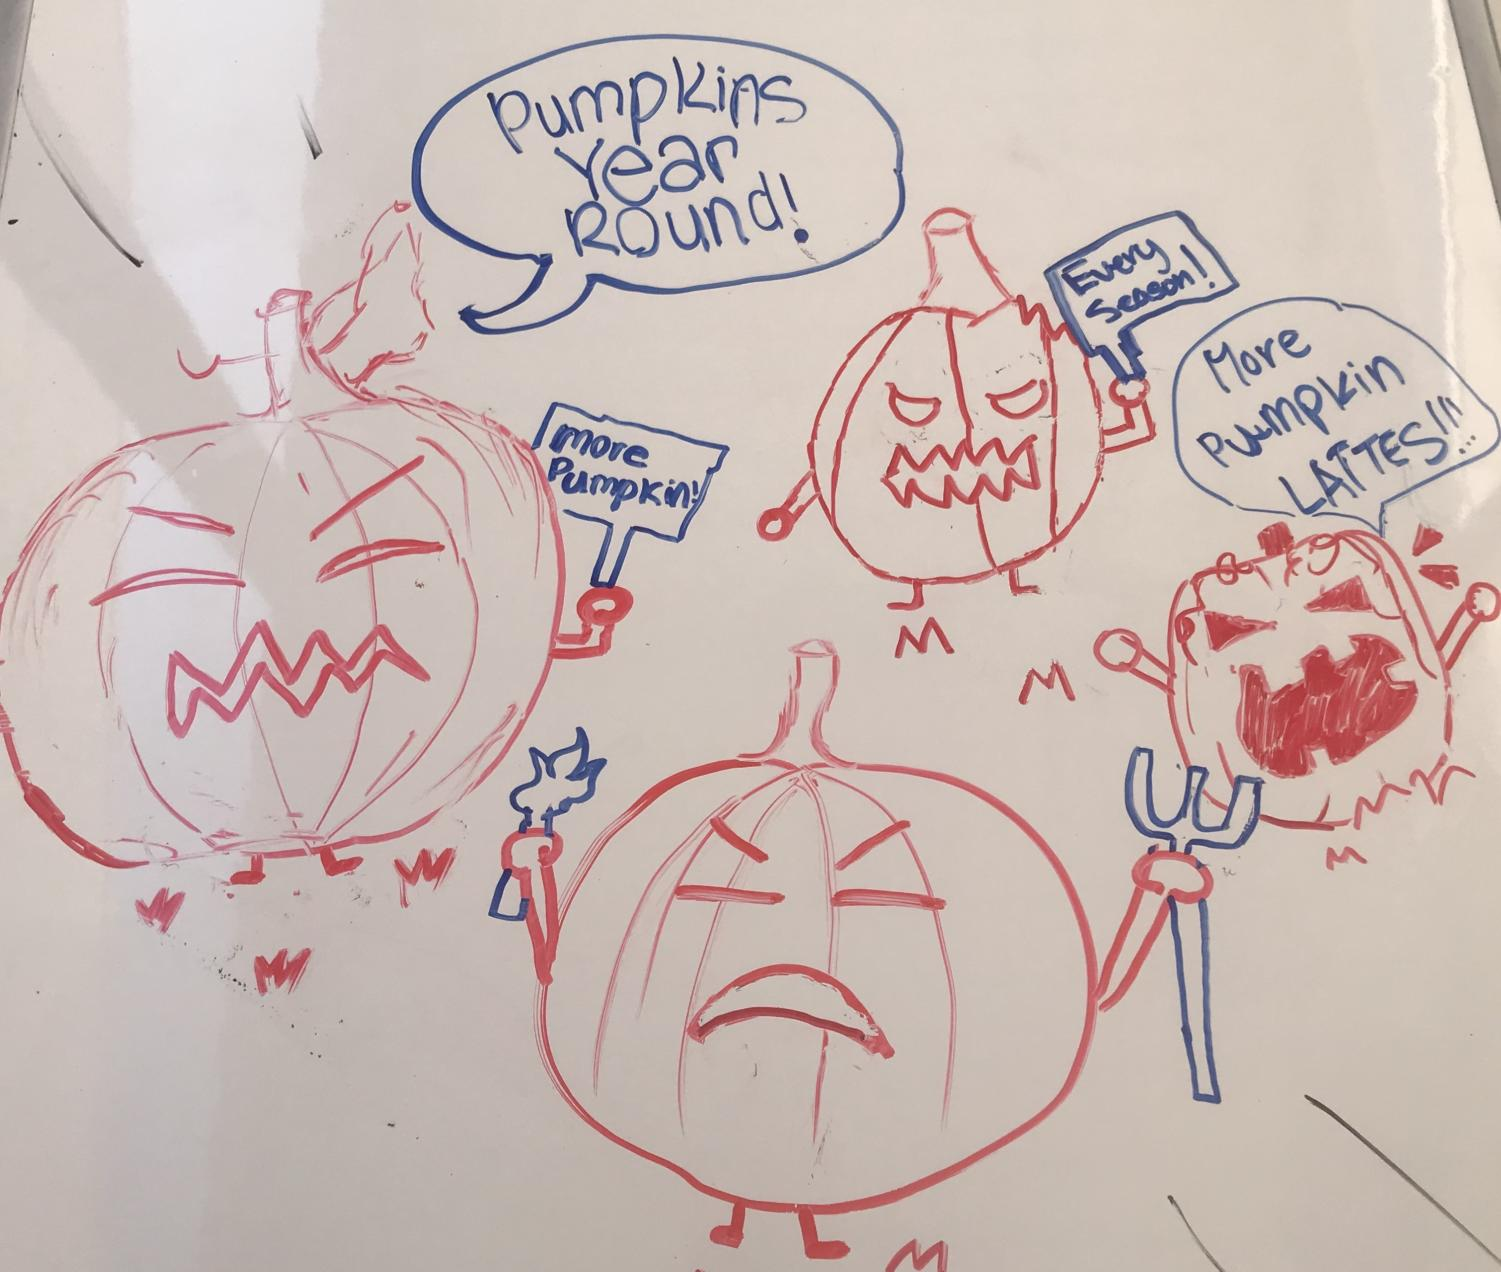 Pumpkins protest against the single season use of pumpkin products.